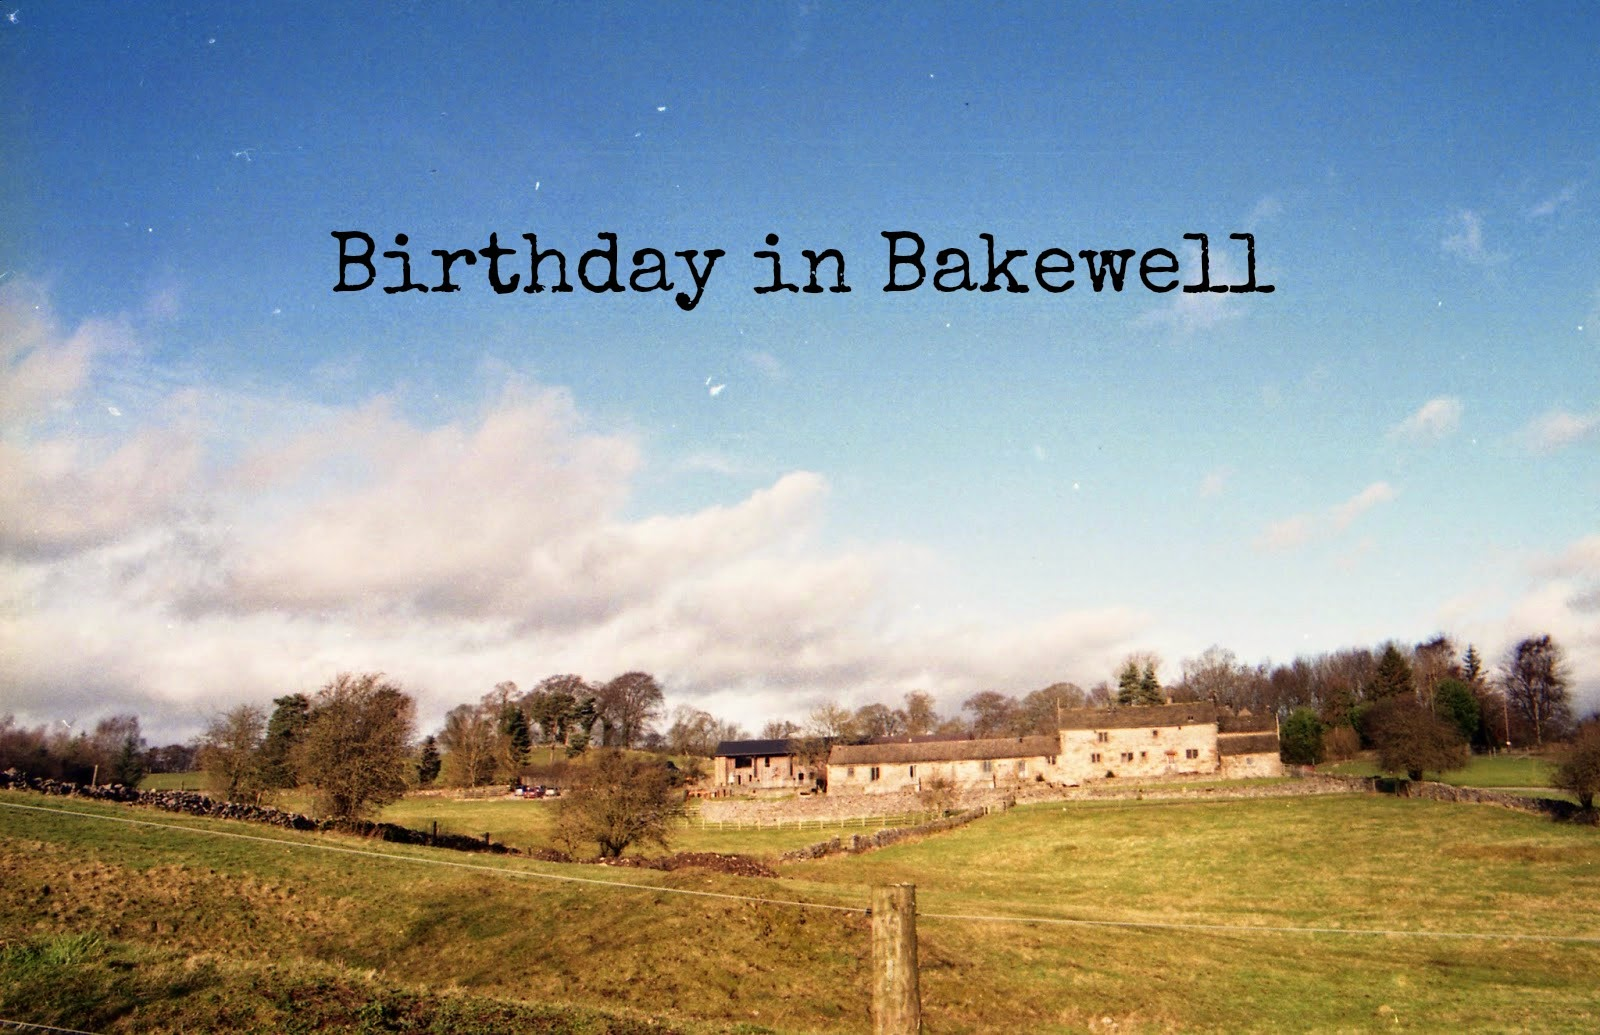 http://talesonfilm.blogspot.co.uk/2014/03/birthday-in-bakewell.html